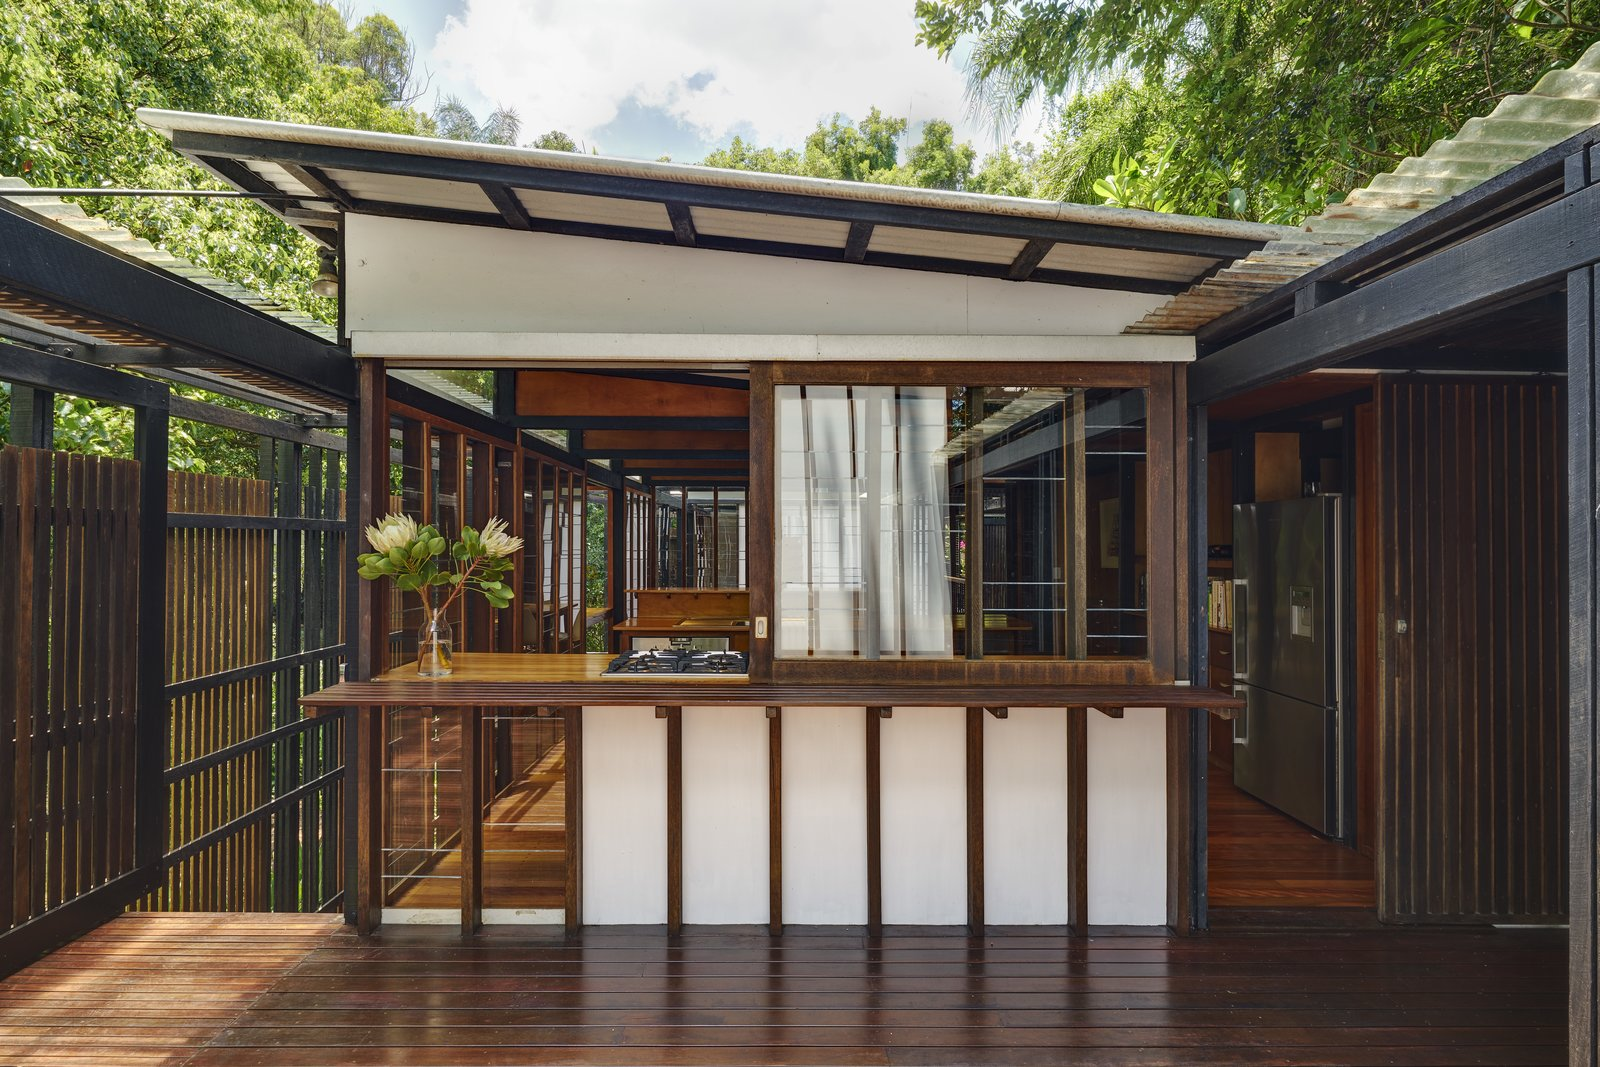 The vertical Japanese slat details imbue the house with a Japanese, Zen-inspired aesthetic.